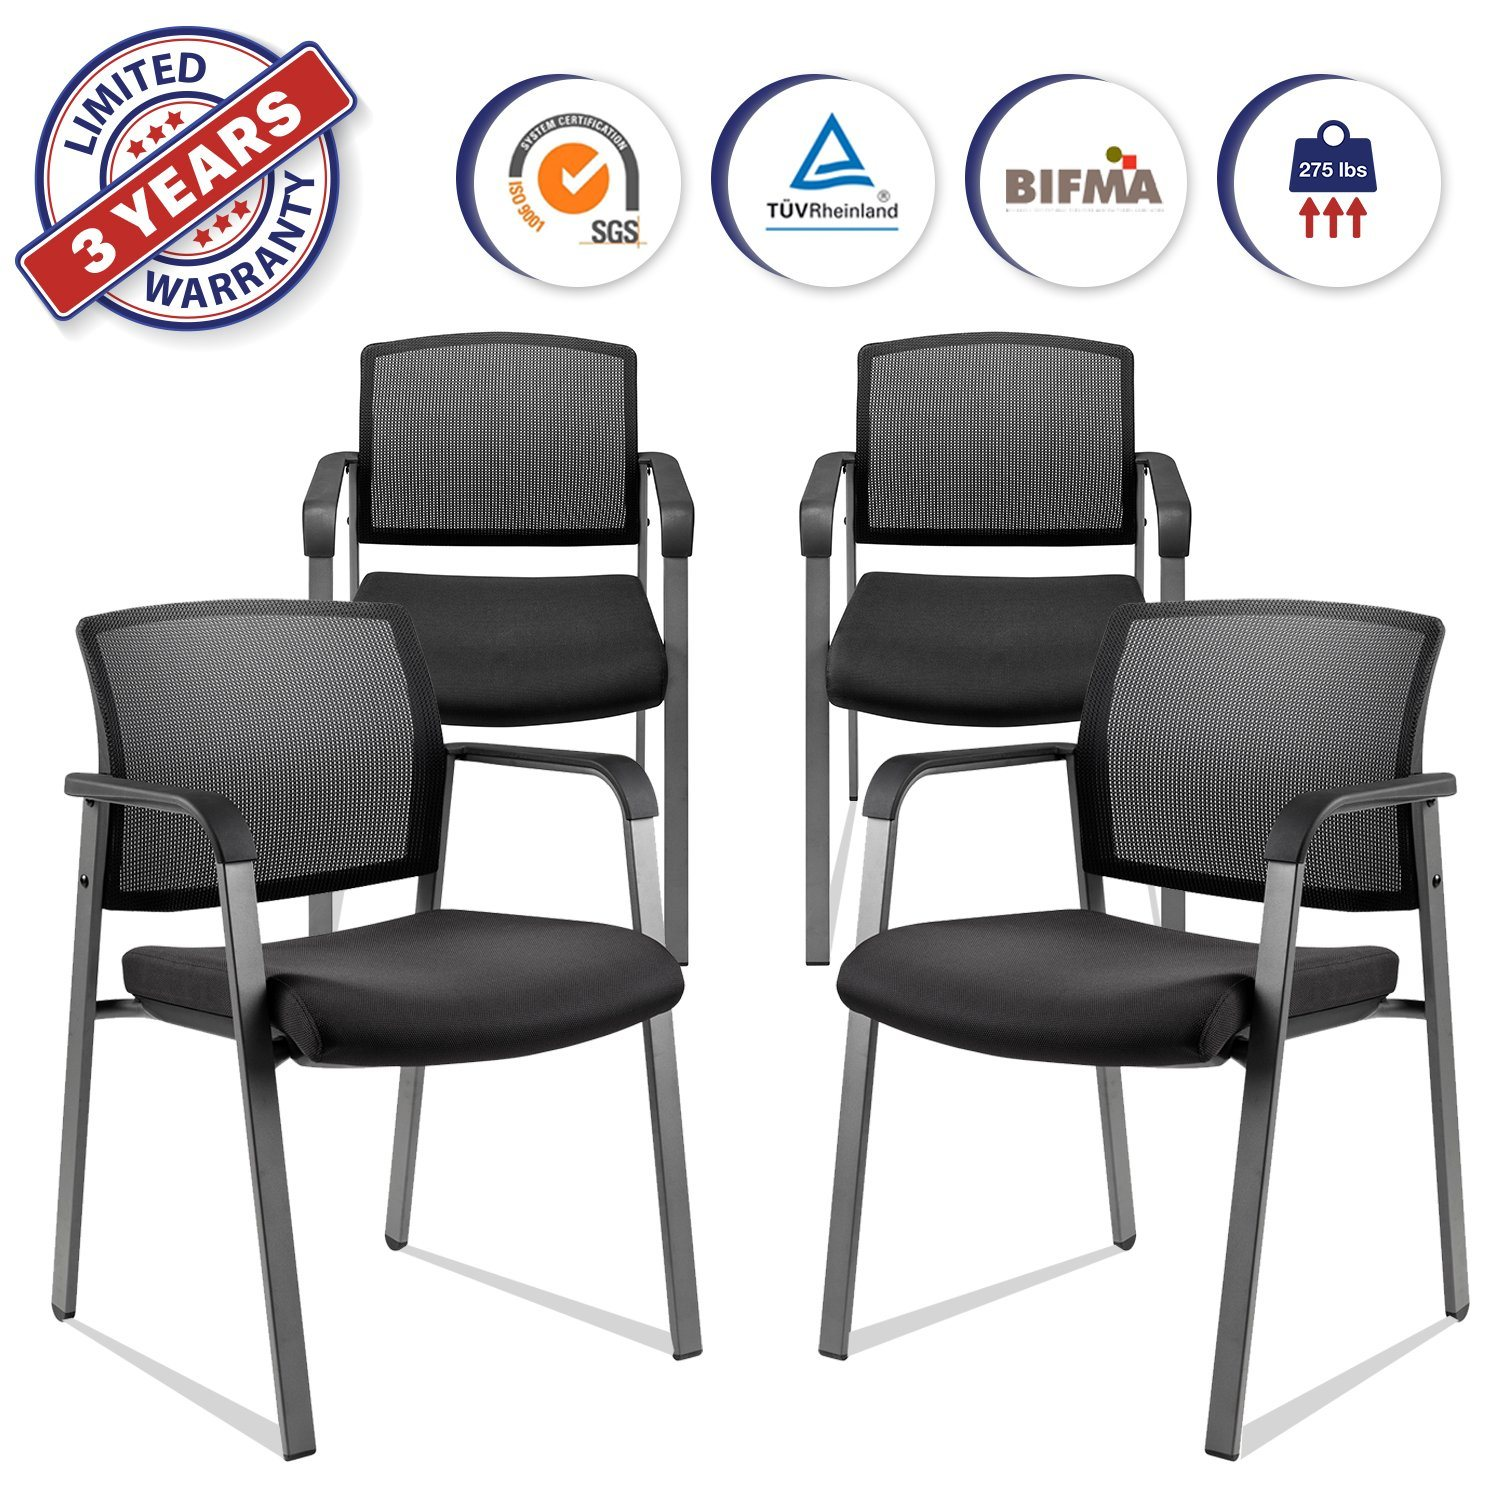 Hot Item Mesh Back Stack Arm Chairs With Upholstered Fabric Seat And Ergonomic Lumber Support For Office School Church Guest Reception Black 4 Pack